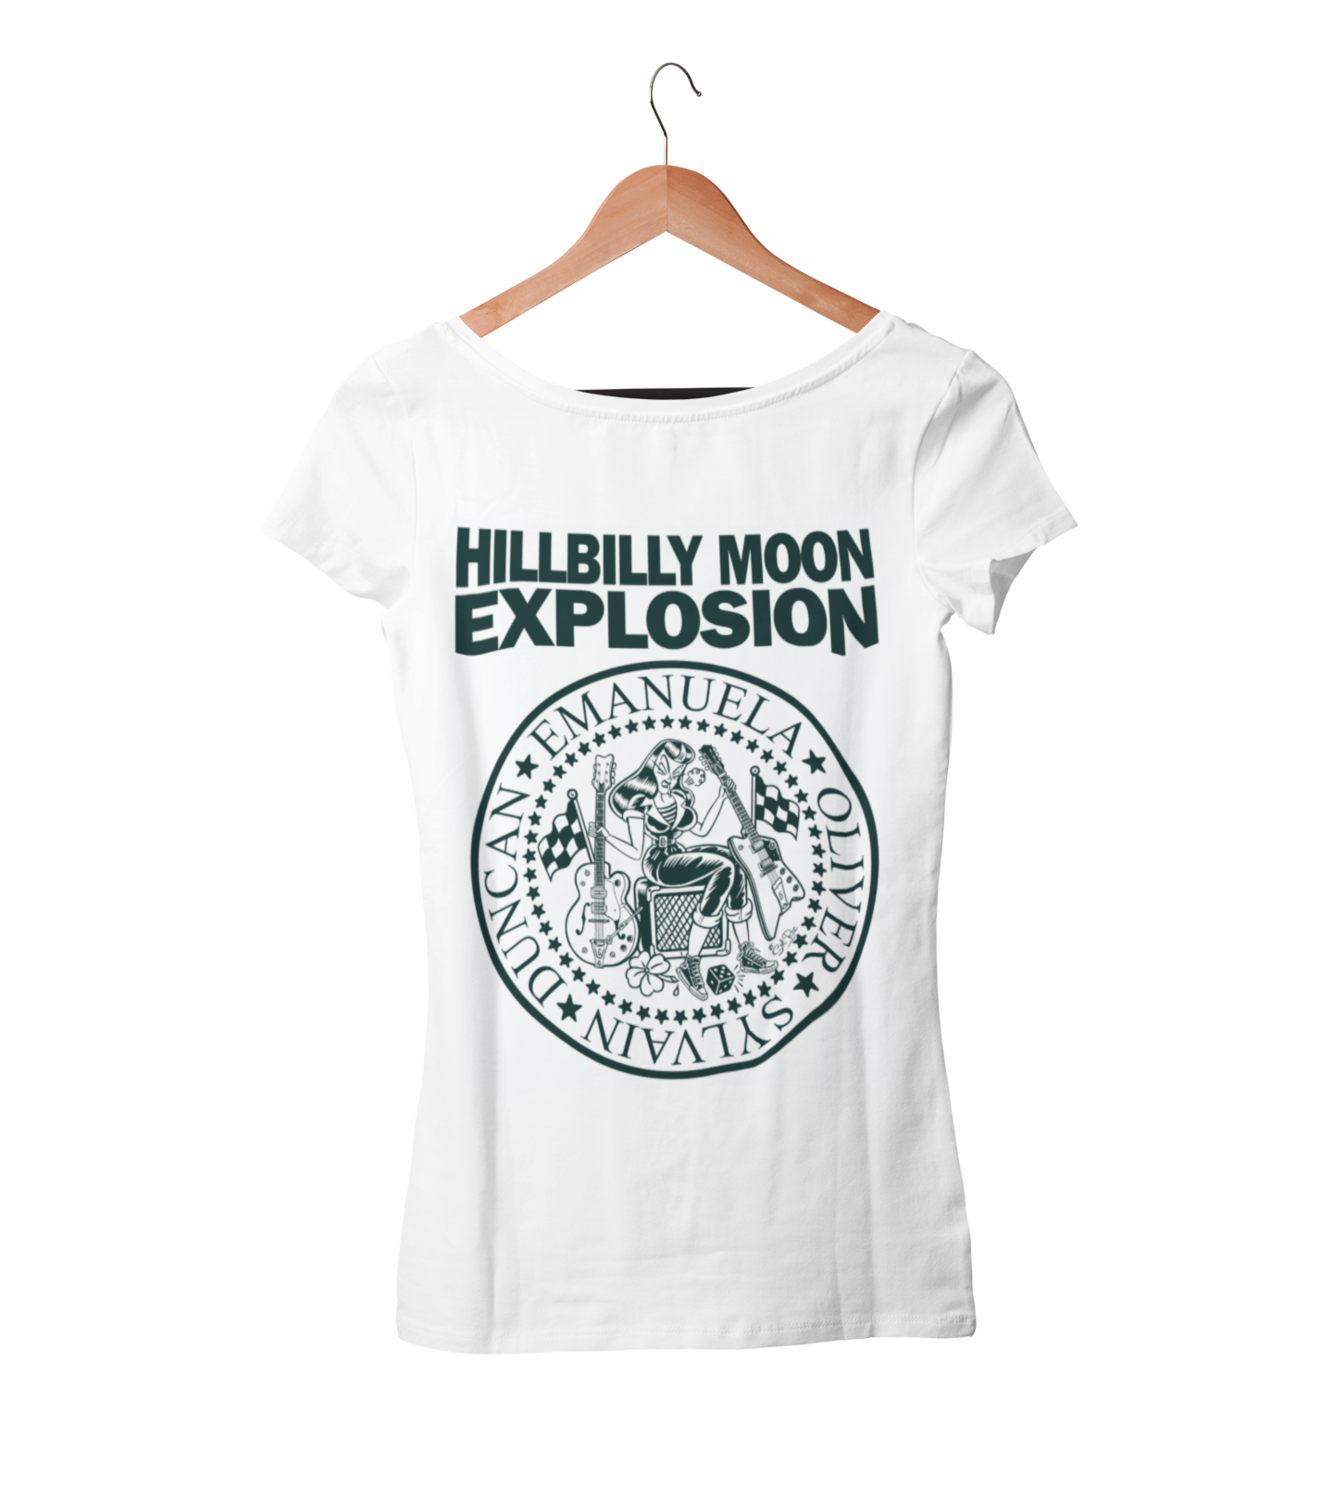 "HILLBILLY MOONG EXPLOSION ""Ramones Explosion"" tshirt for WOMEN by Solrac"